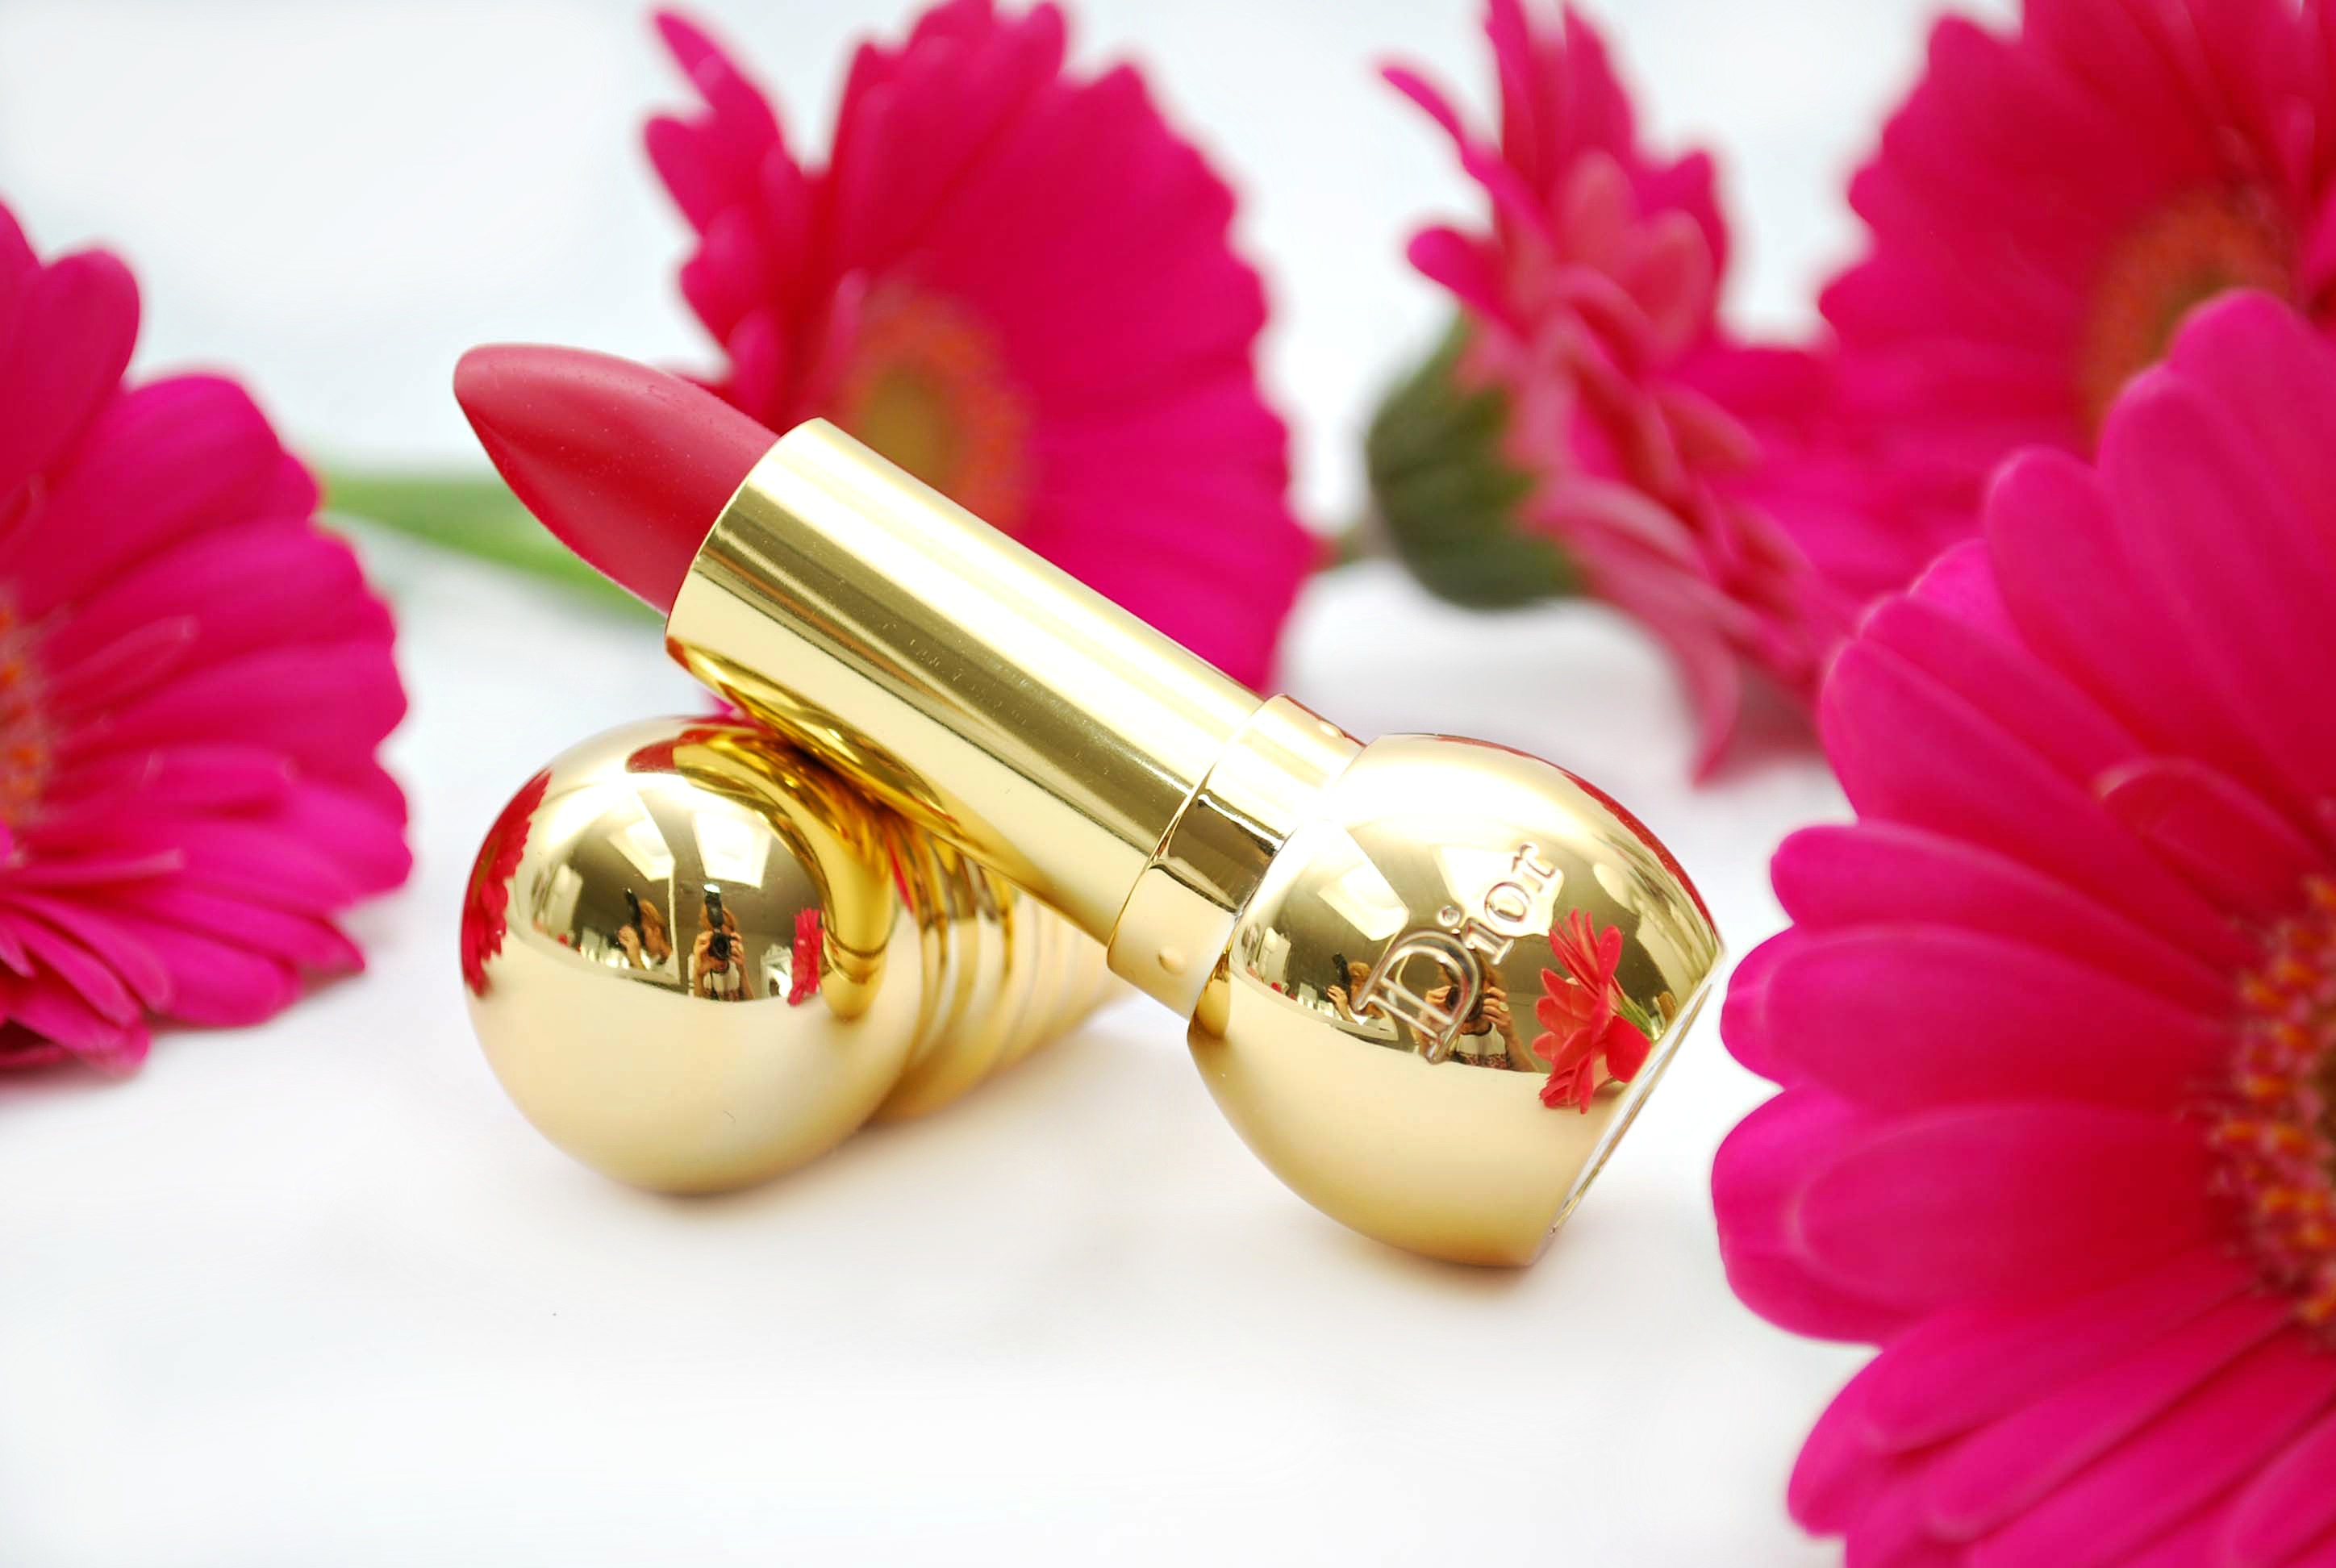 dior lipstick hollywood review longlasting